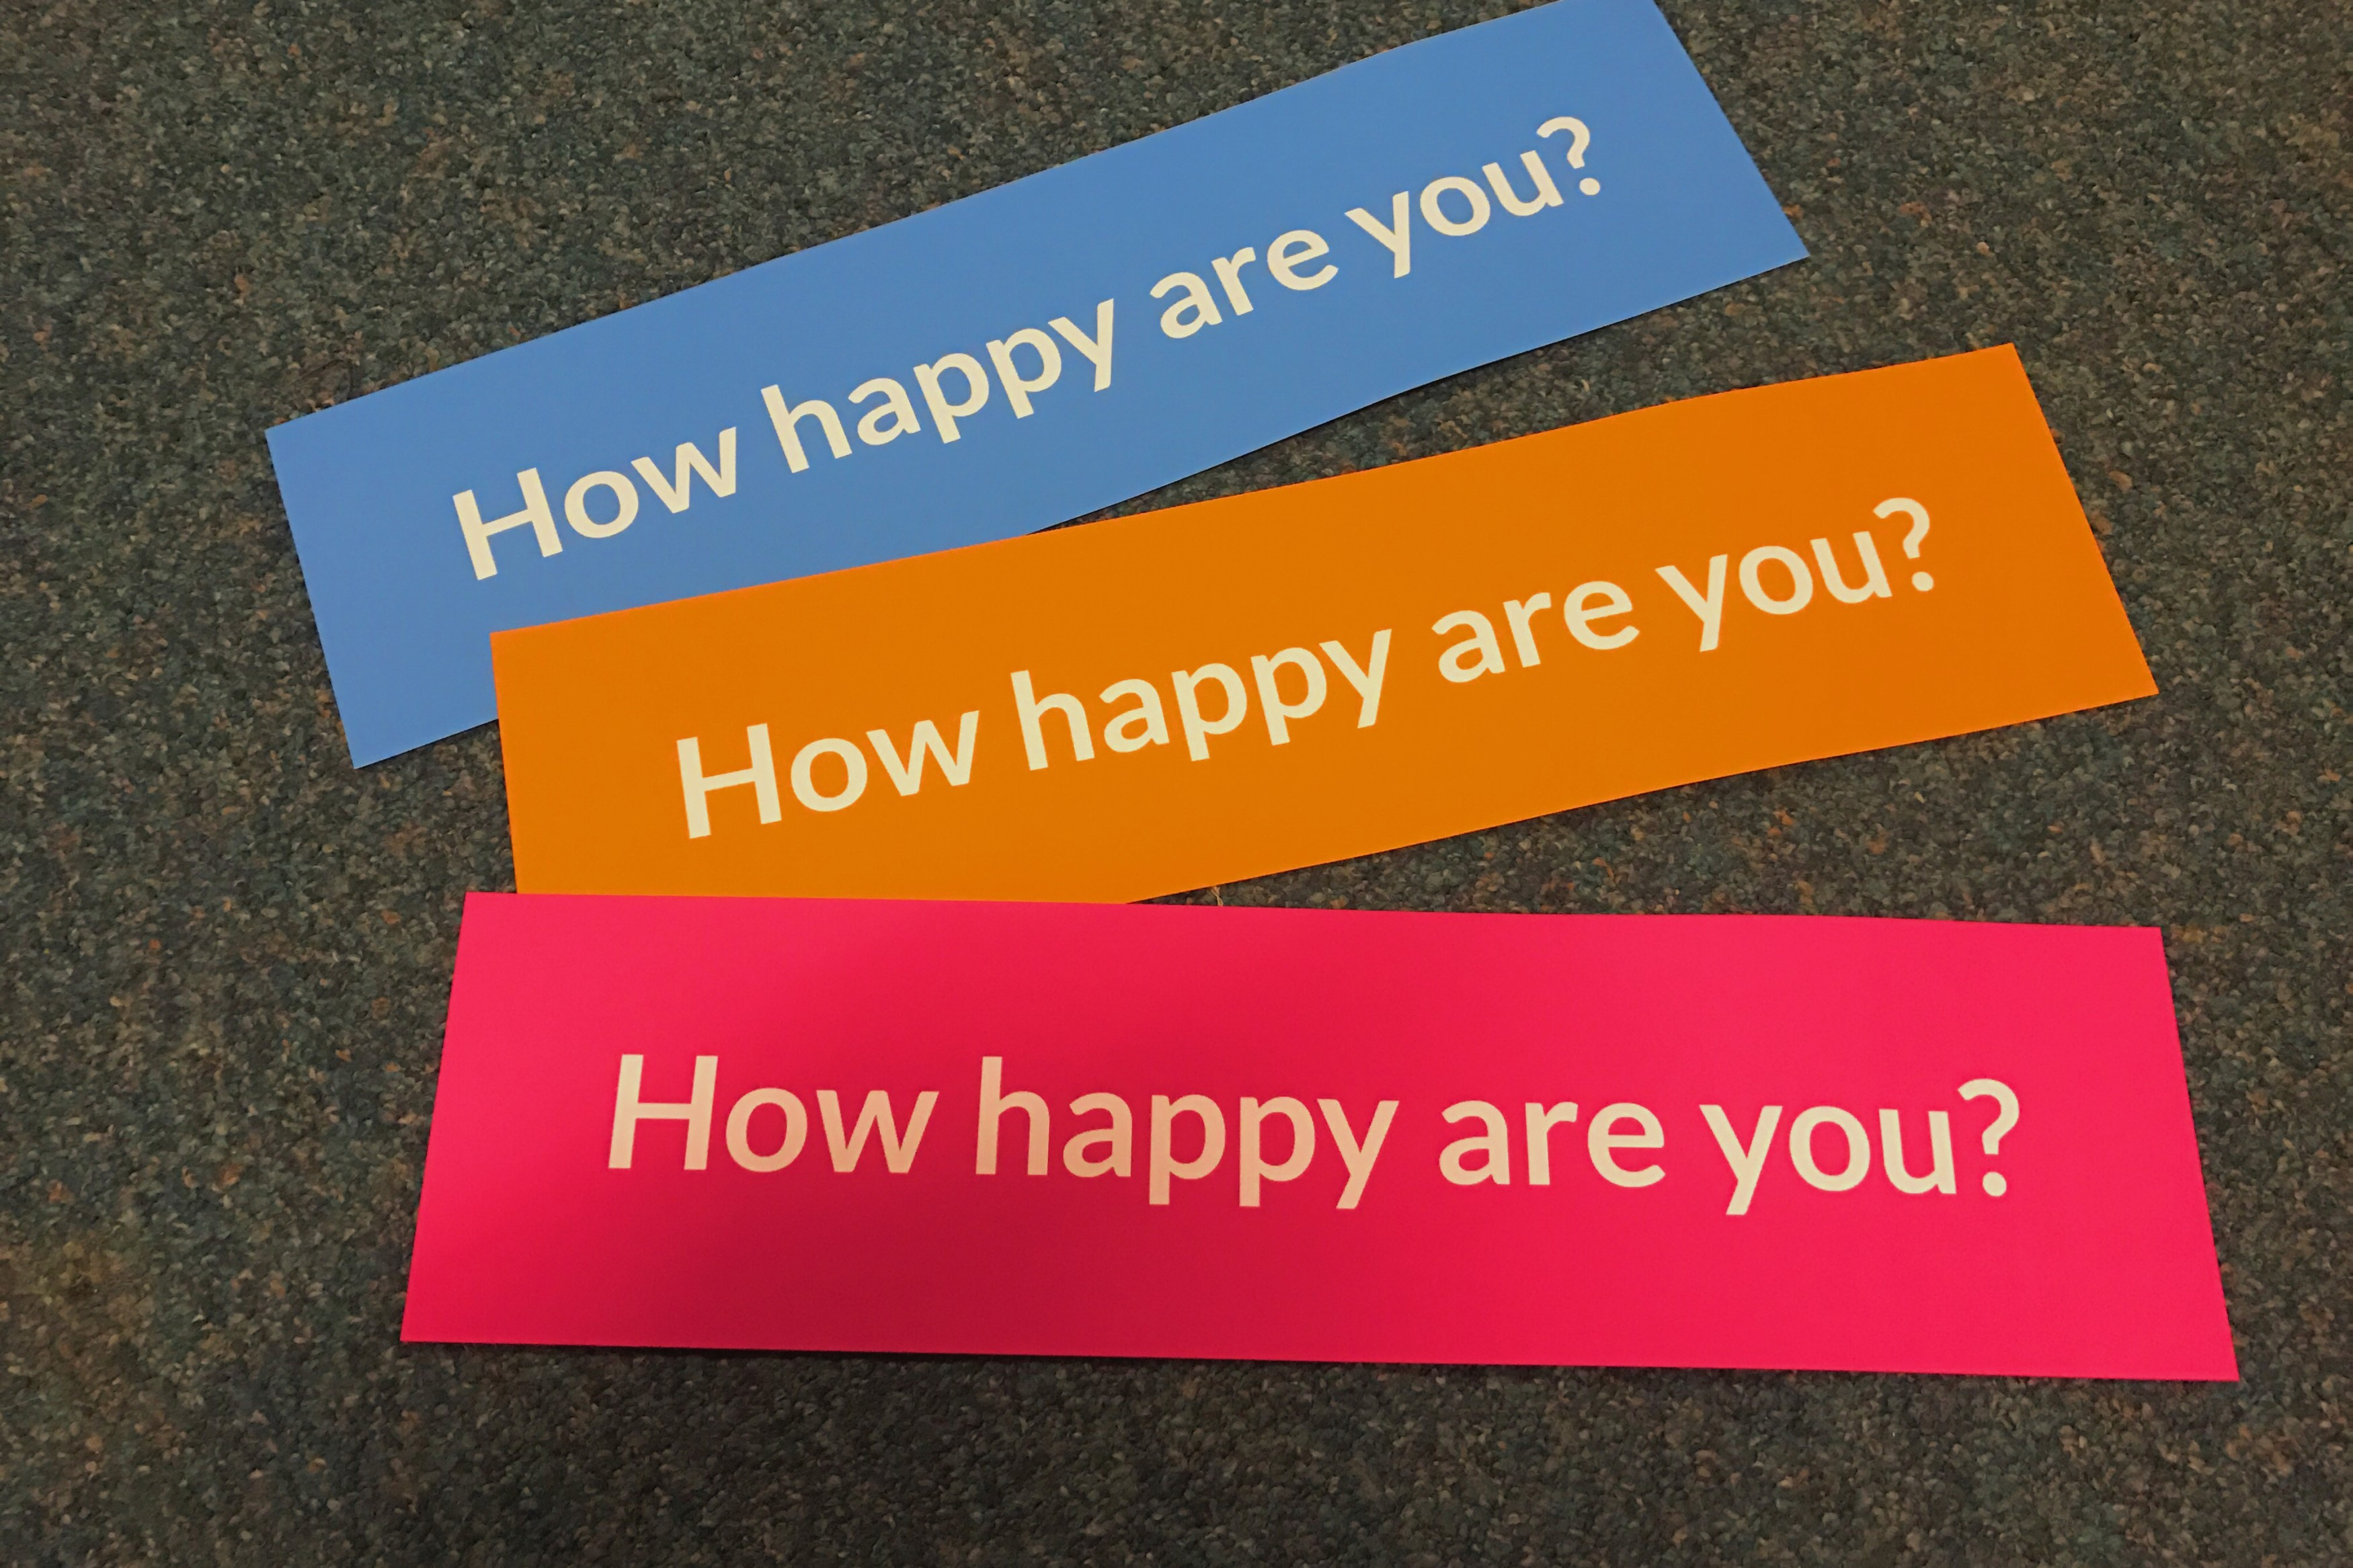 """3 signs of different colors with the text """"How happy are you?"""""""